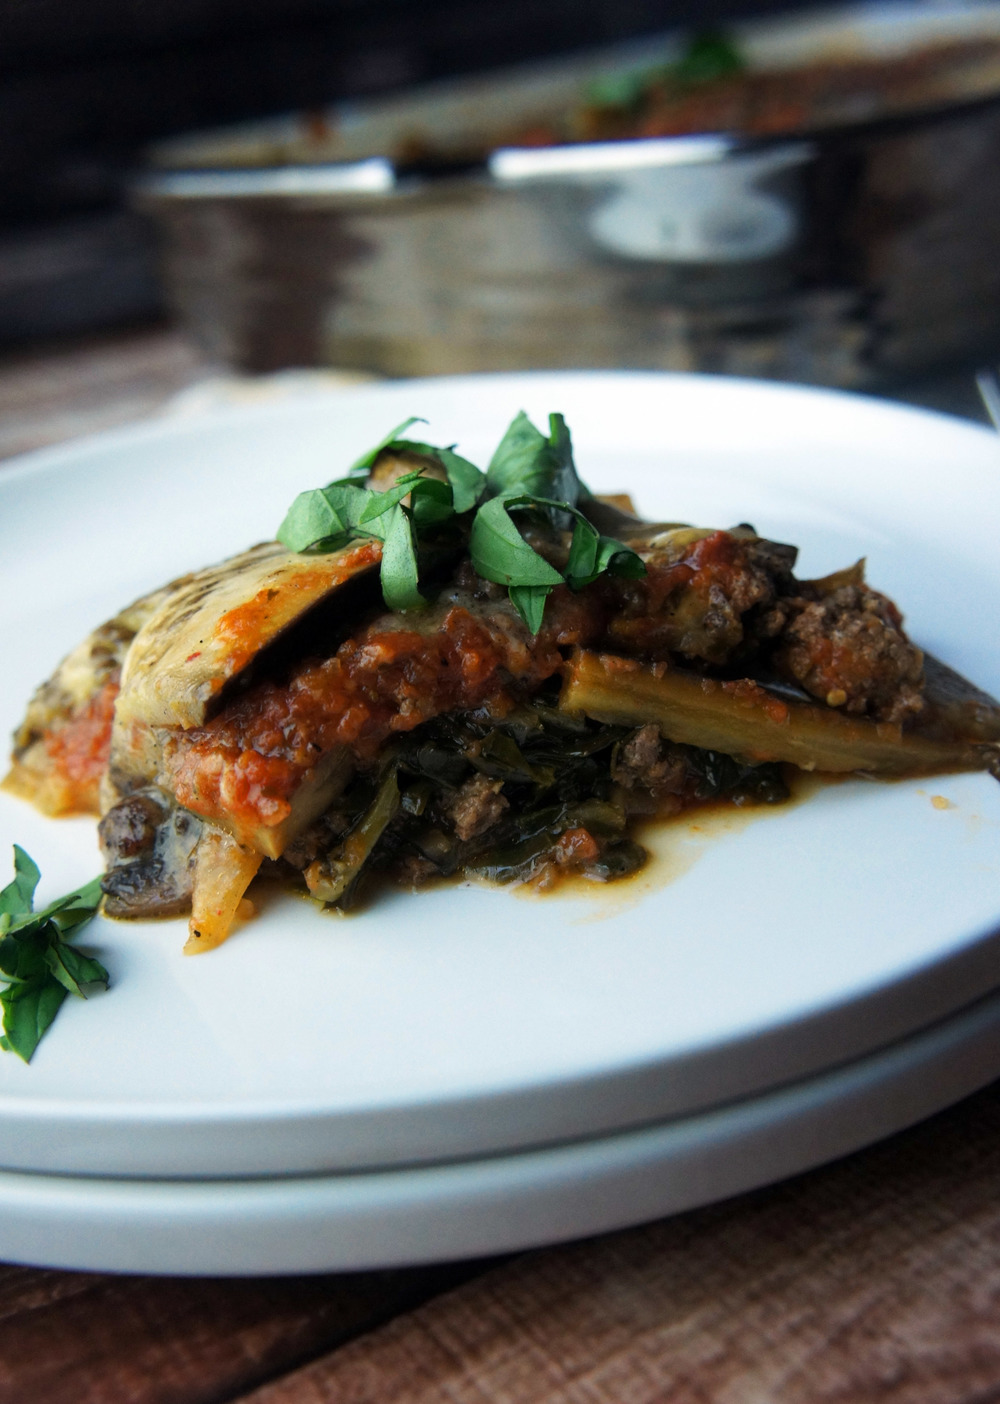 A pasta-free lasagna with caramelized eggplant, mushrooms, and spinach